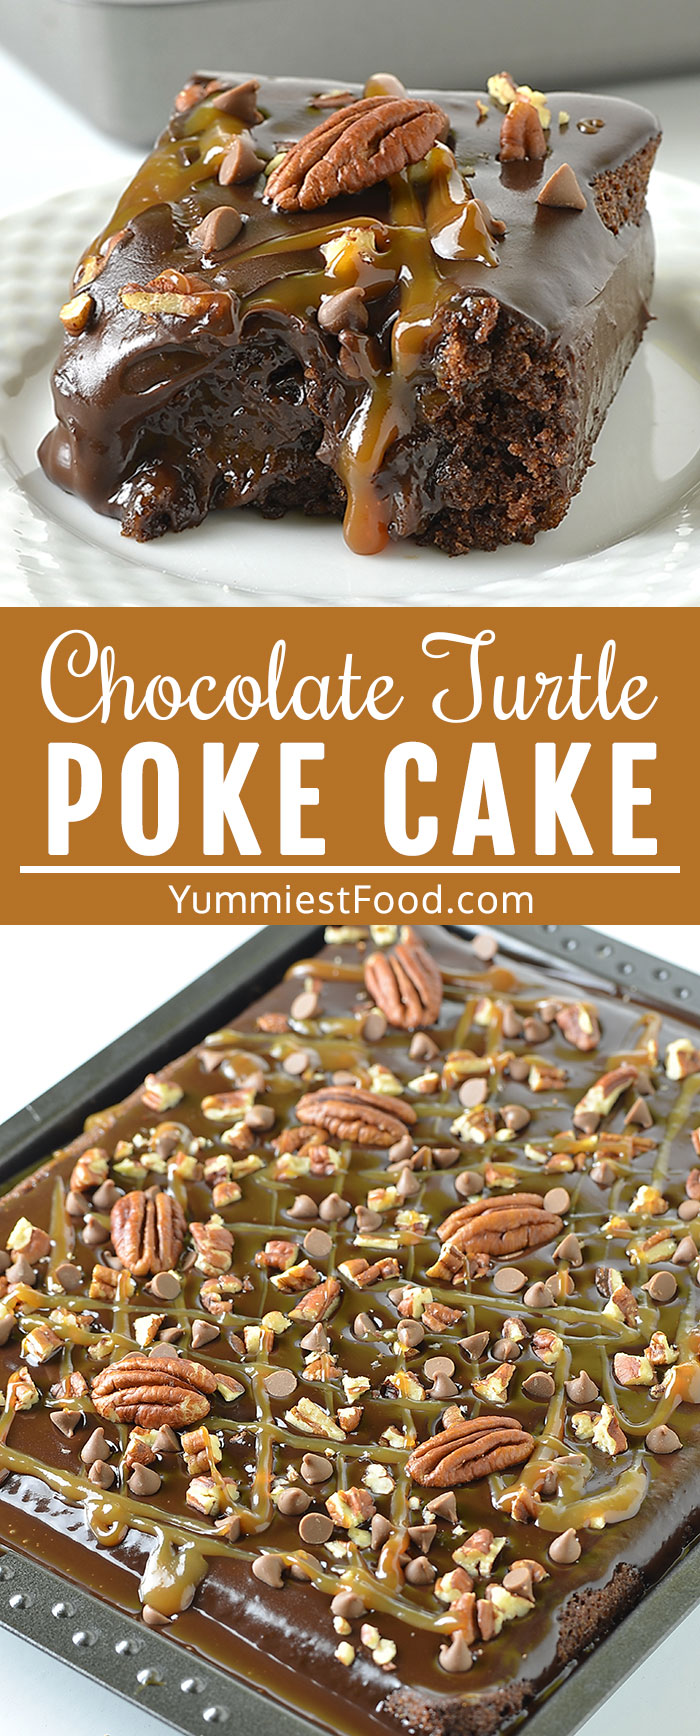 Chocolate Turtle Poke Cake is amazing poke cake loaded with caramel, chocolate, pecans and chocolate chips! It is decadent, rich, easy and delicious! #desserts #dessertrecipes #easyrecipes #cake #pokecake